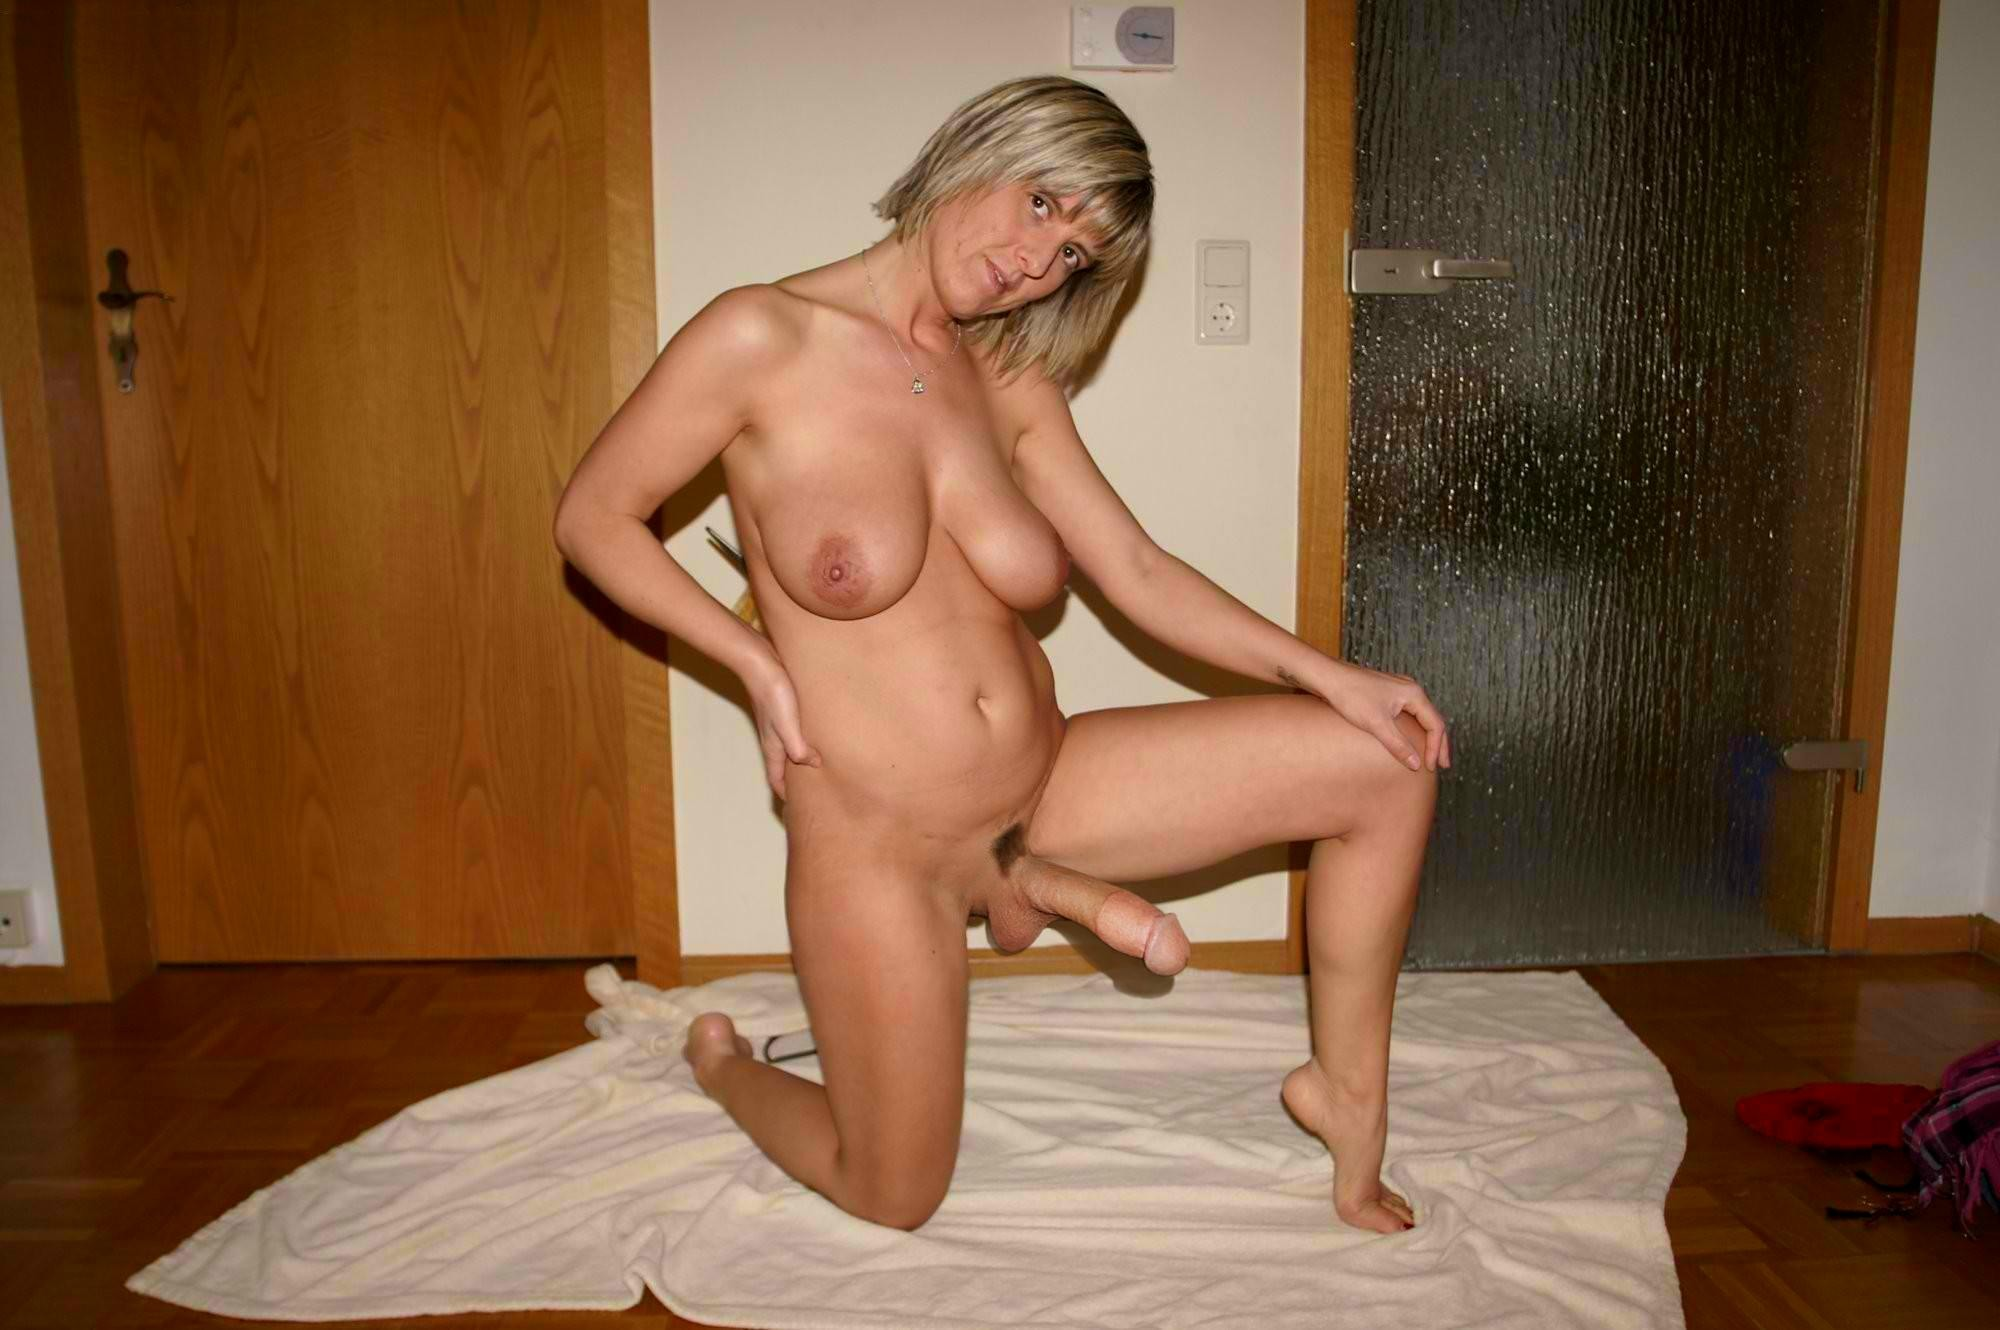 Mature chicks with dicks Cougar Cubs -Older women